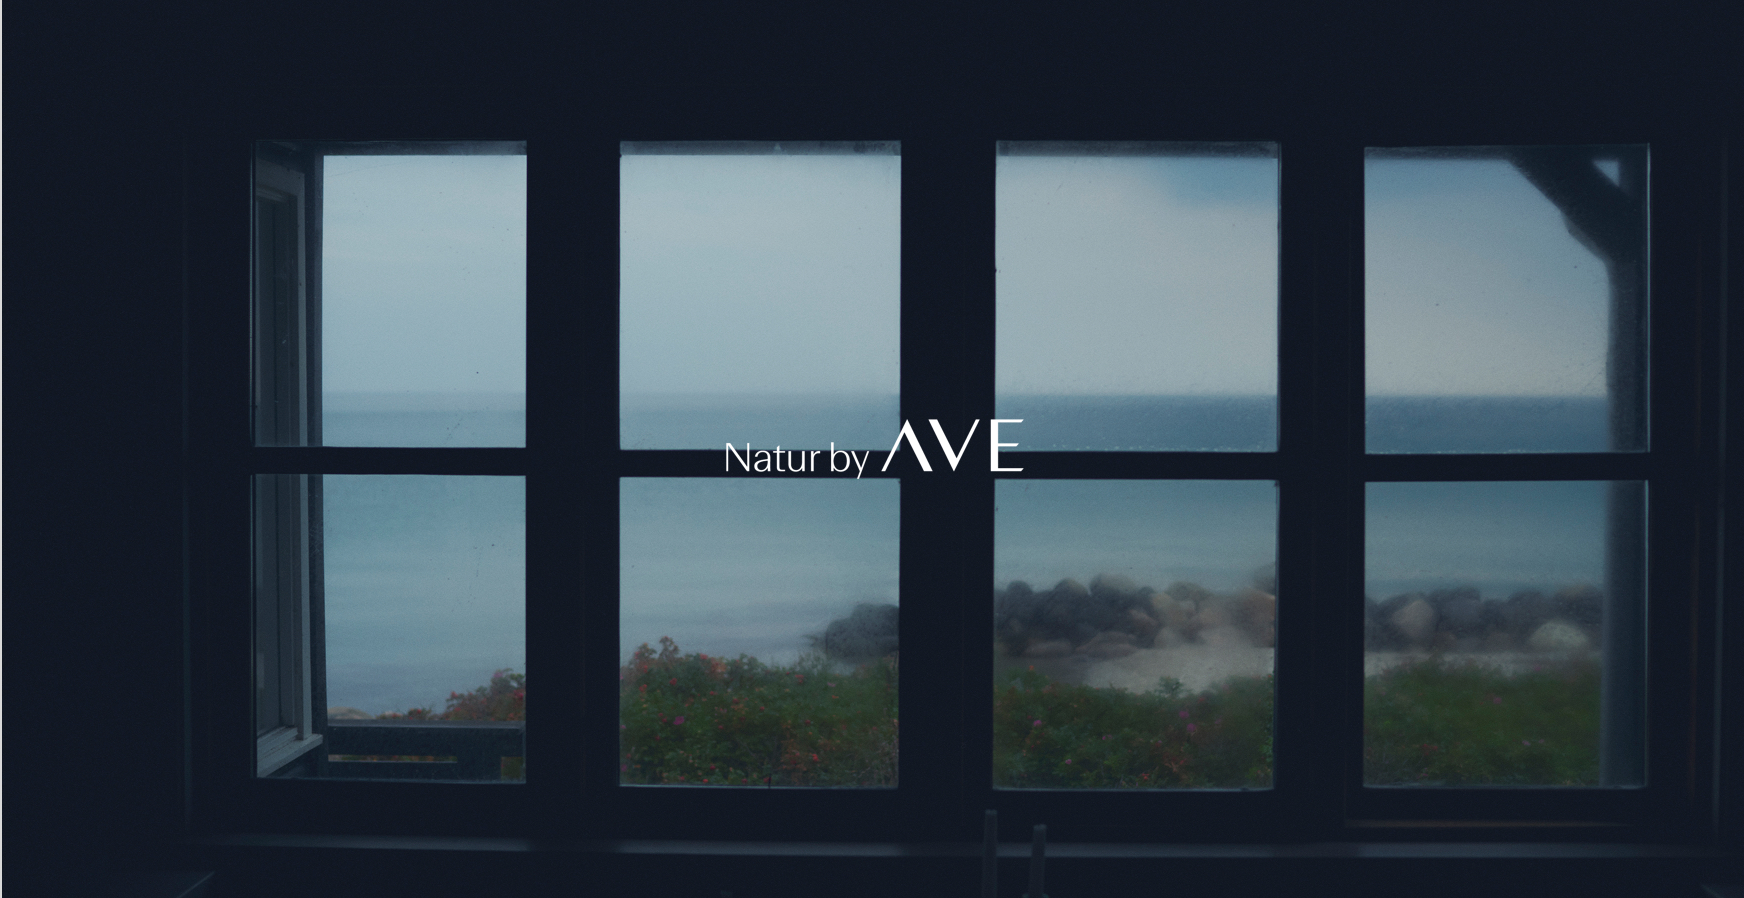 ave_header_named3.jpg